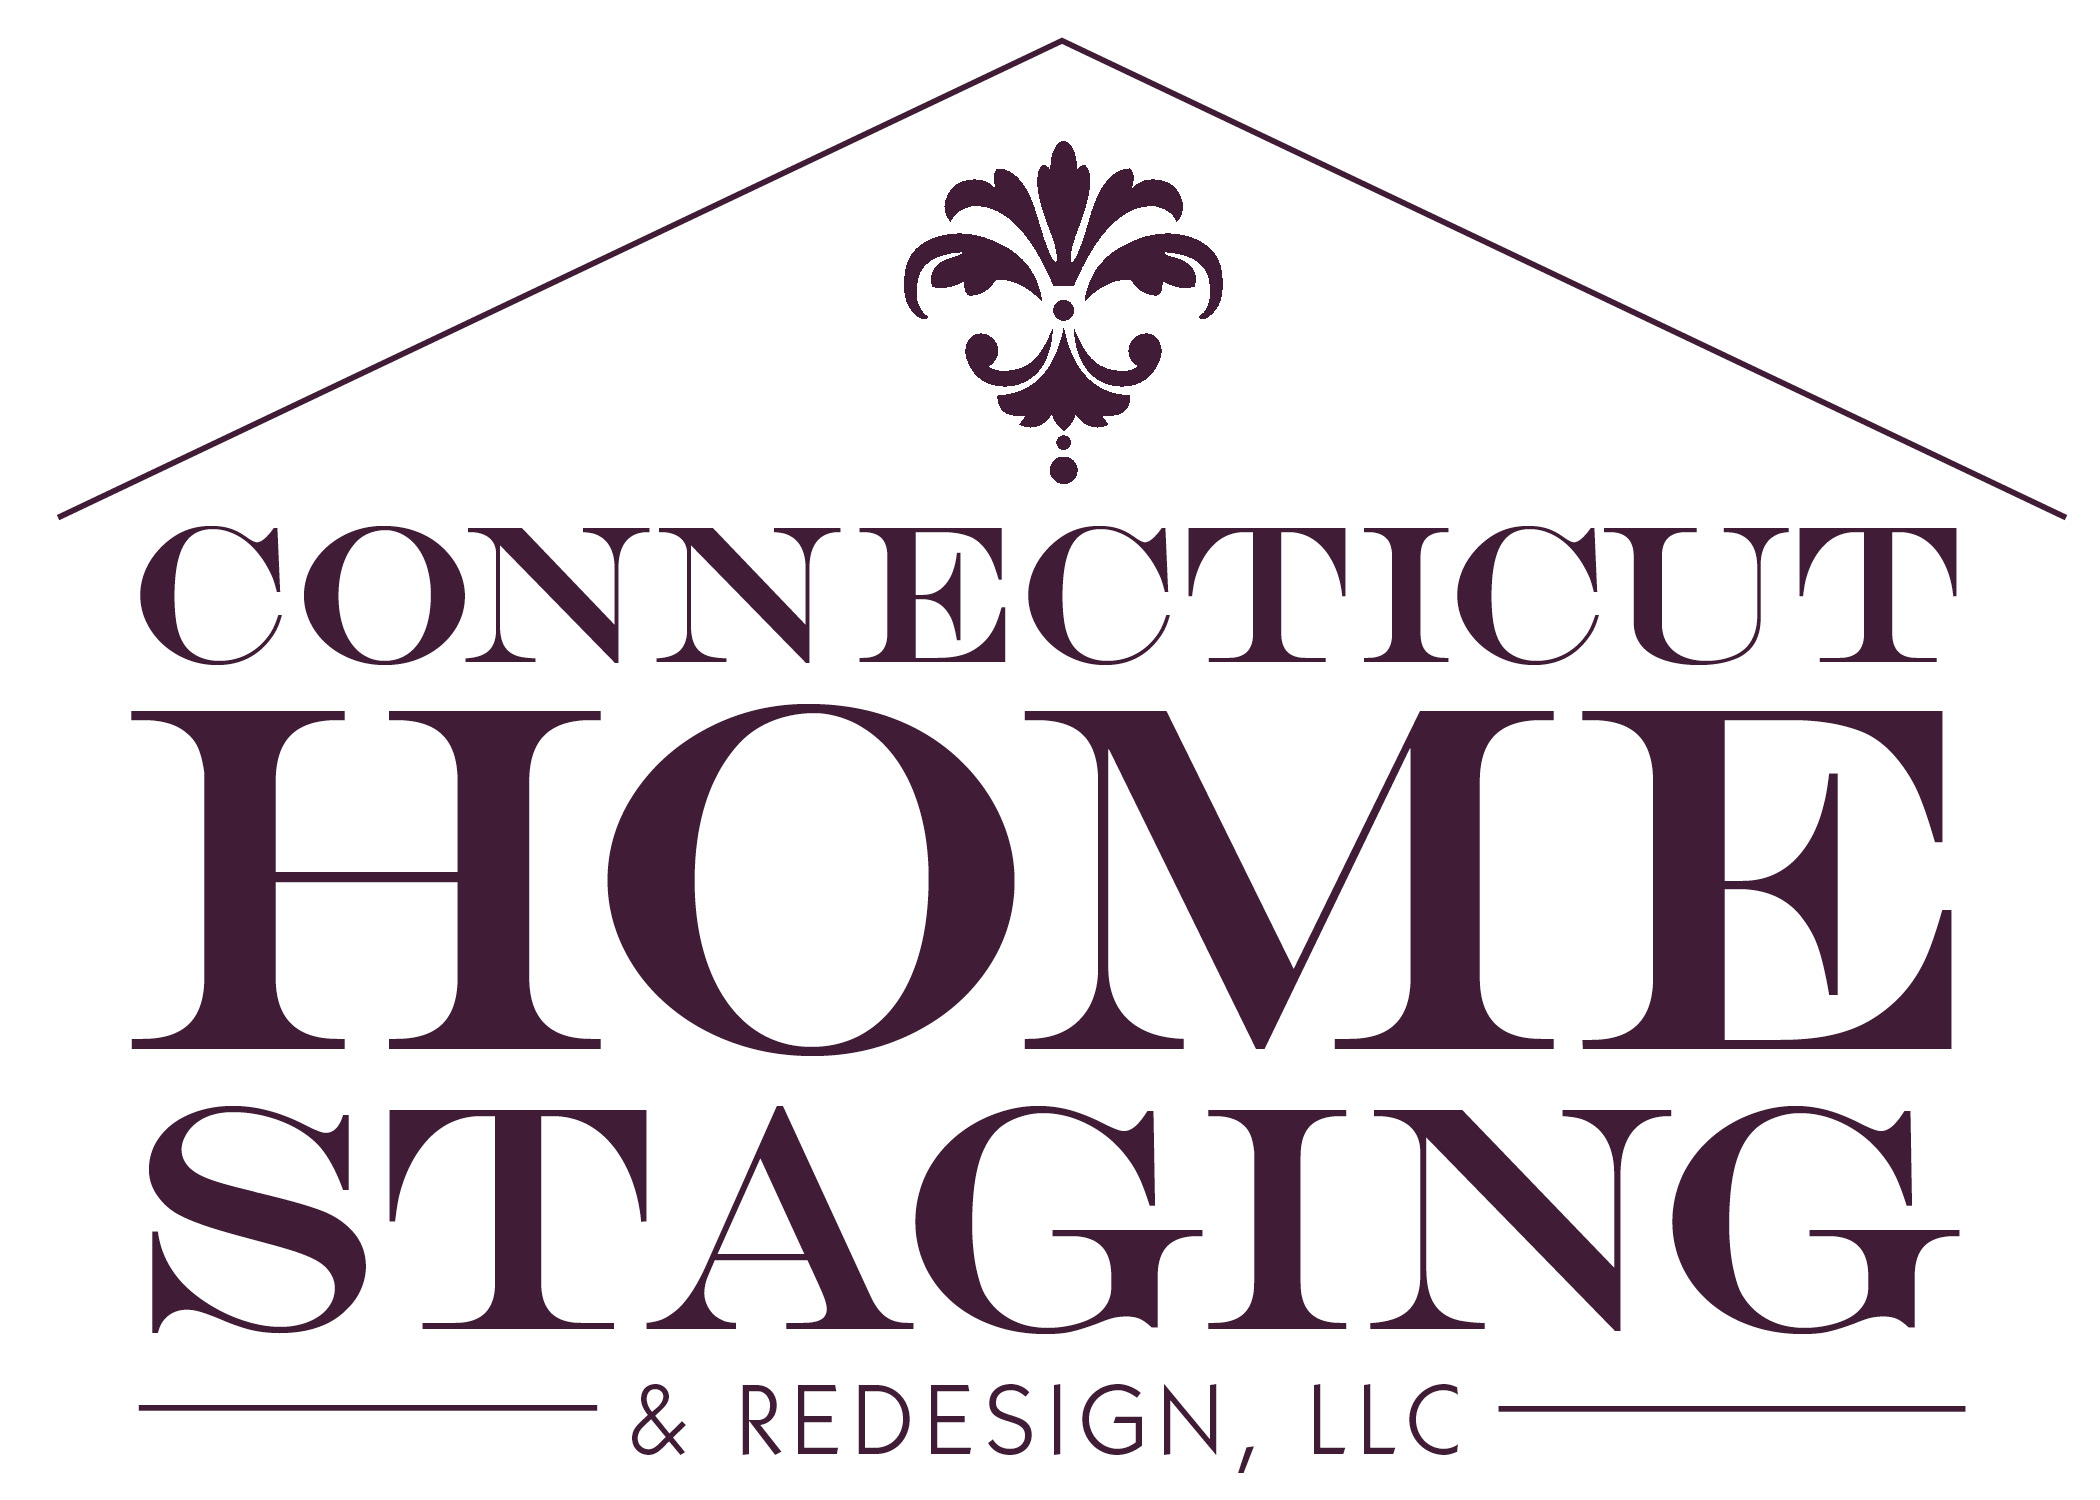 connecticut home staging. Black Bedroom Furniture Sets. Home Design Ideas